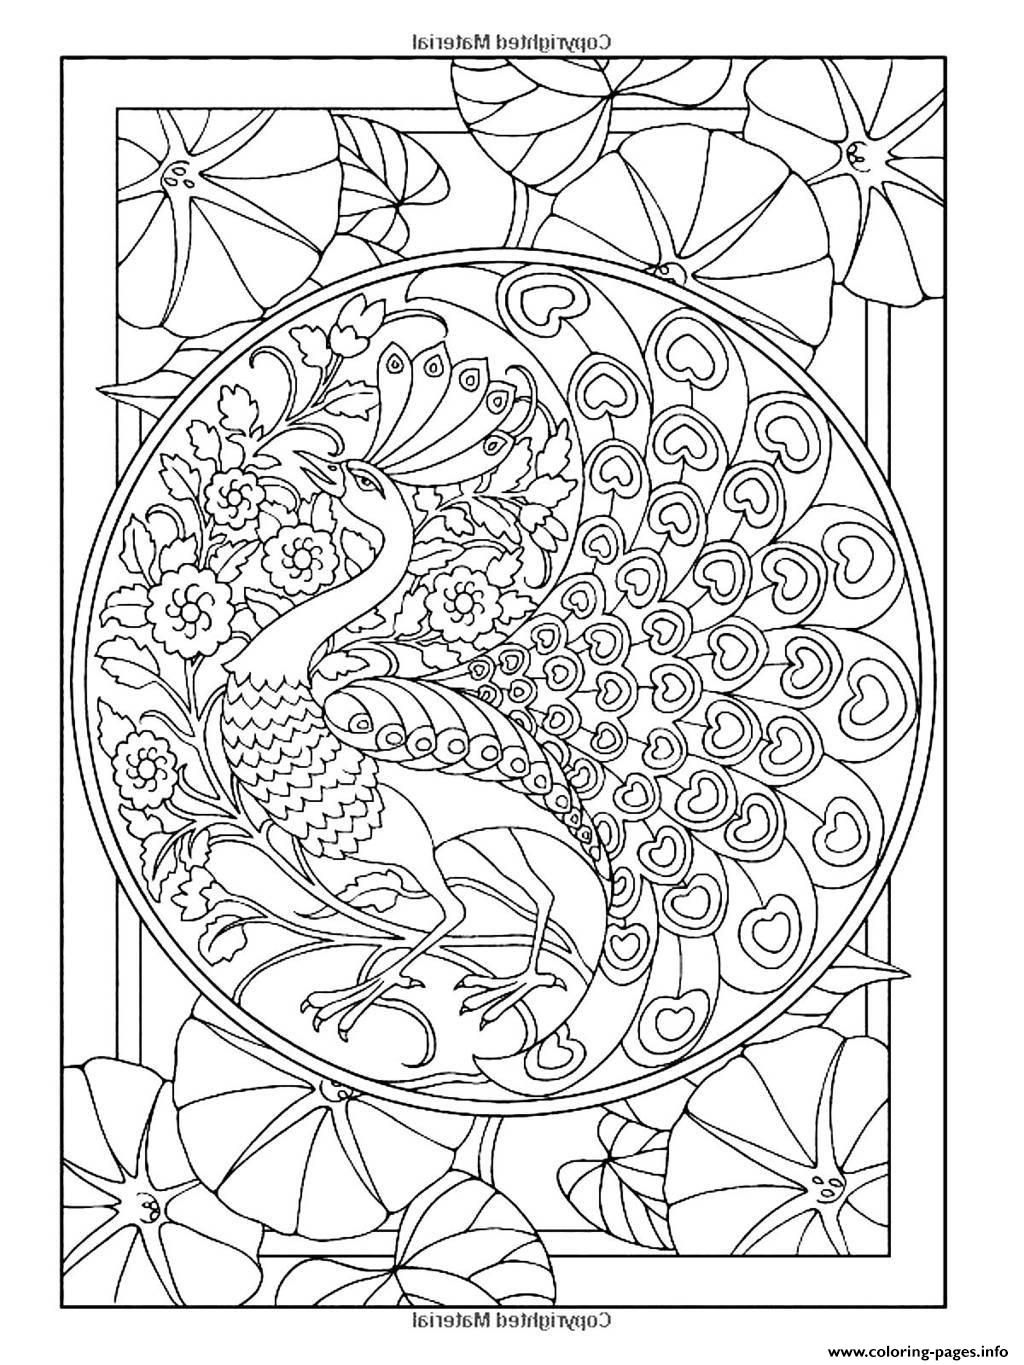 coloring pages online for adults owl coloring pages for adults free detailed owl coloring coloring online adults pages for